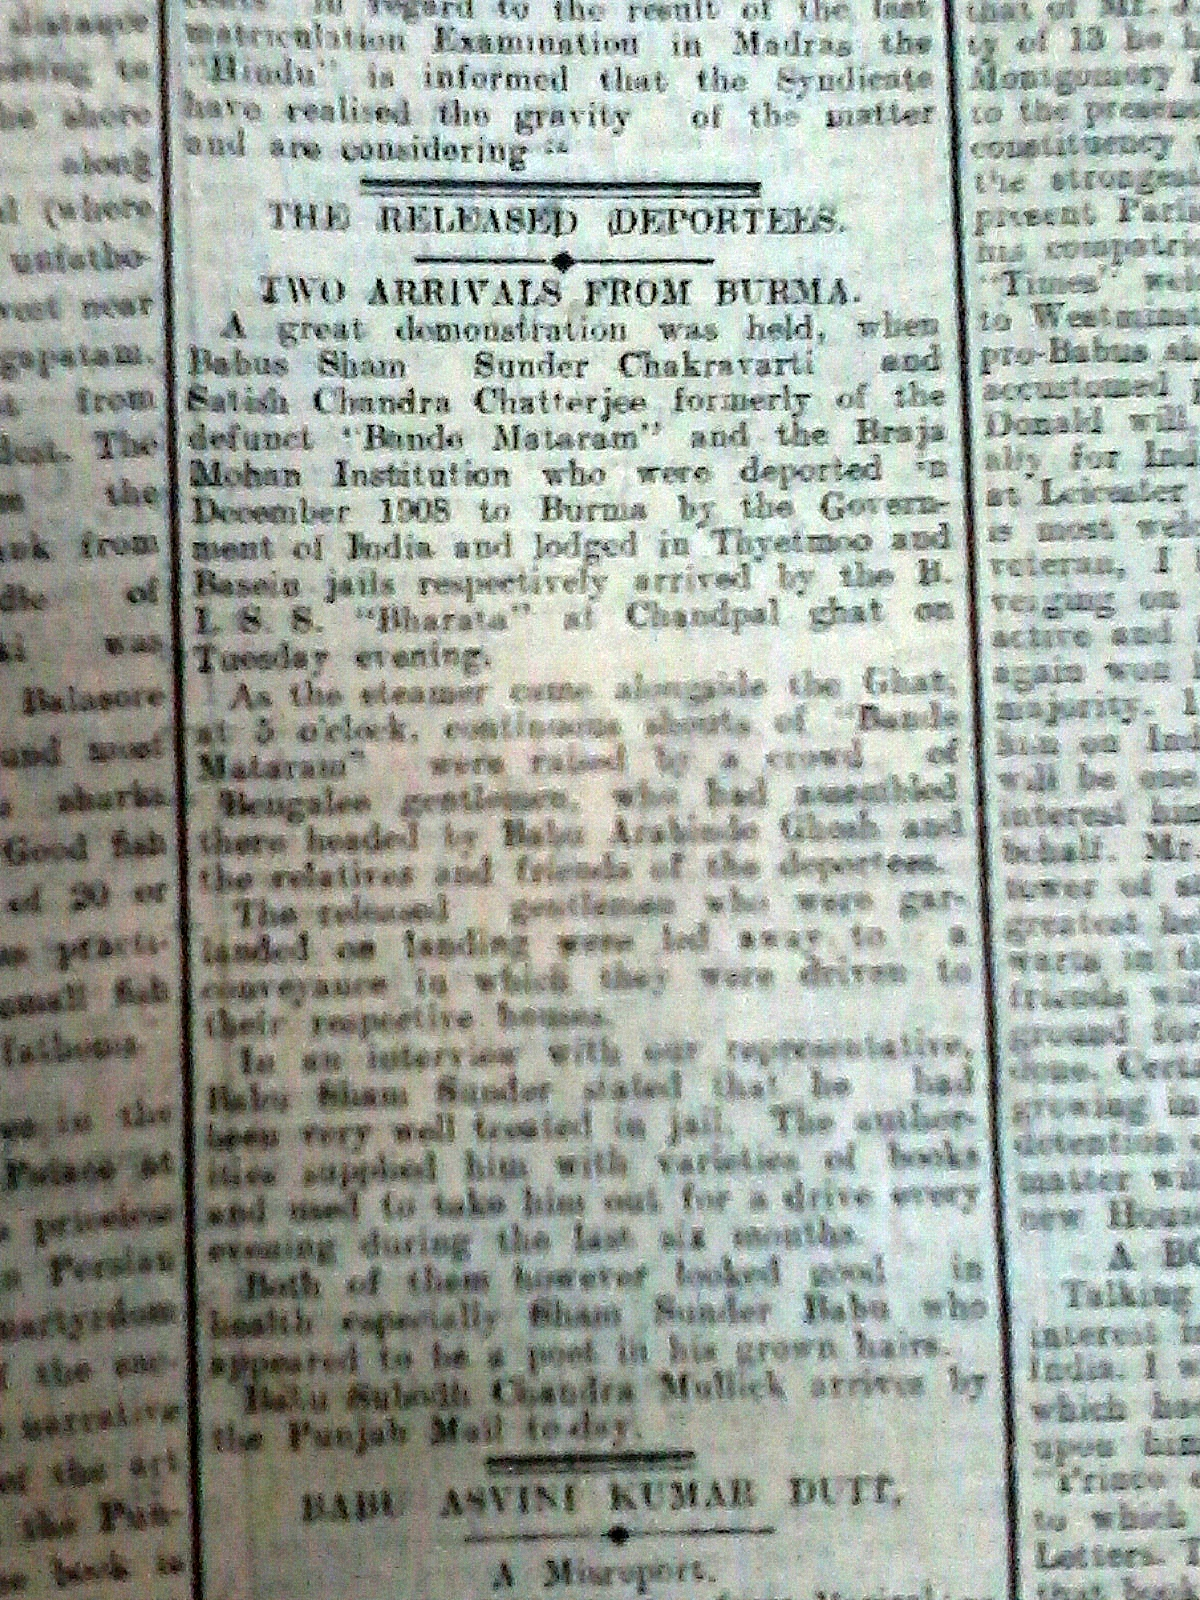 Newspaper report on Sri Aurobindo's visit to Chandpal Ghat on 15.February.1910